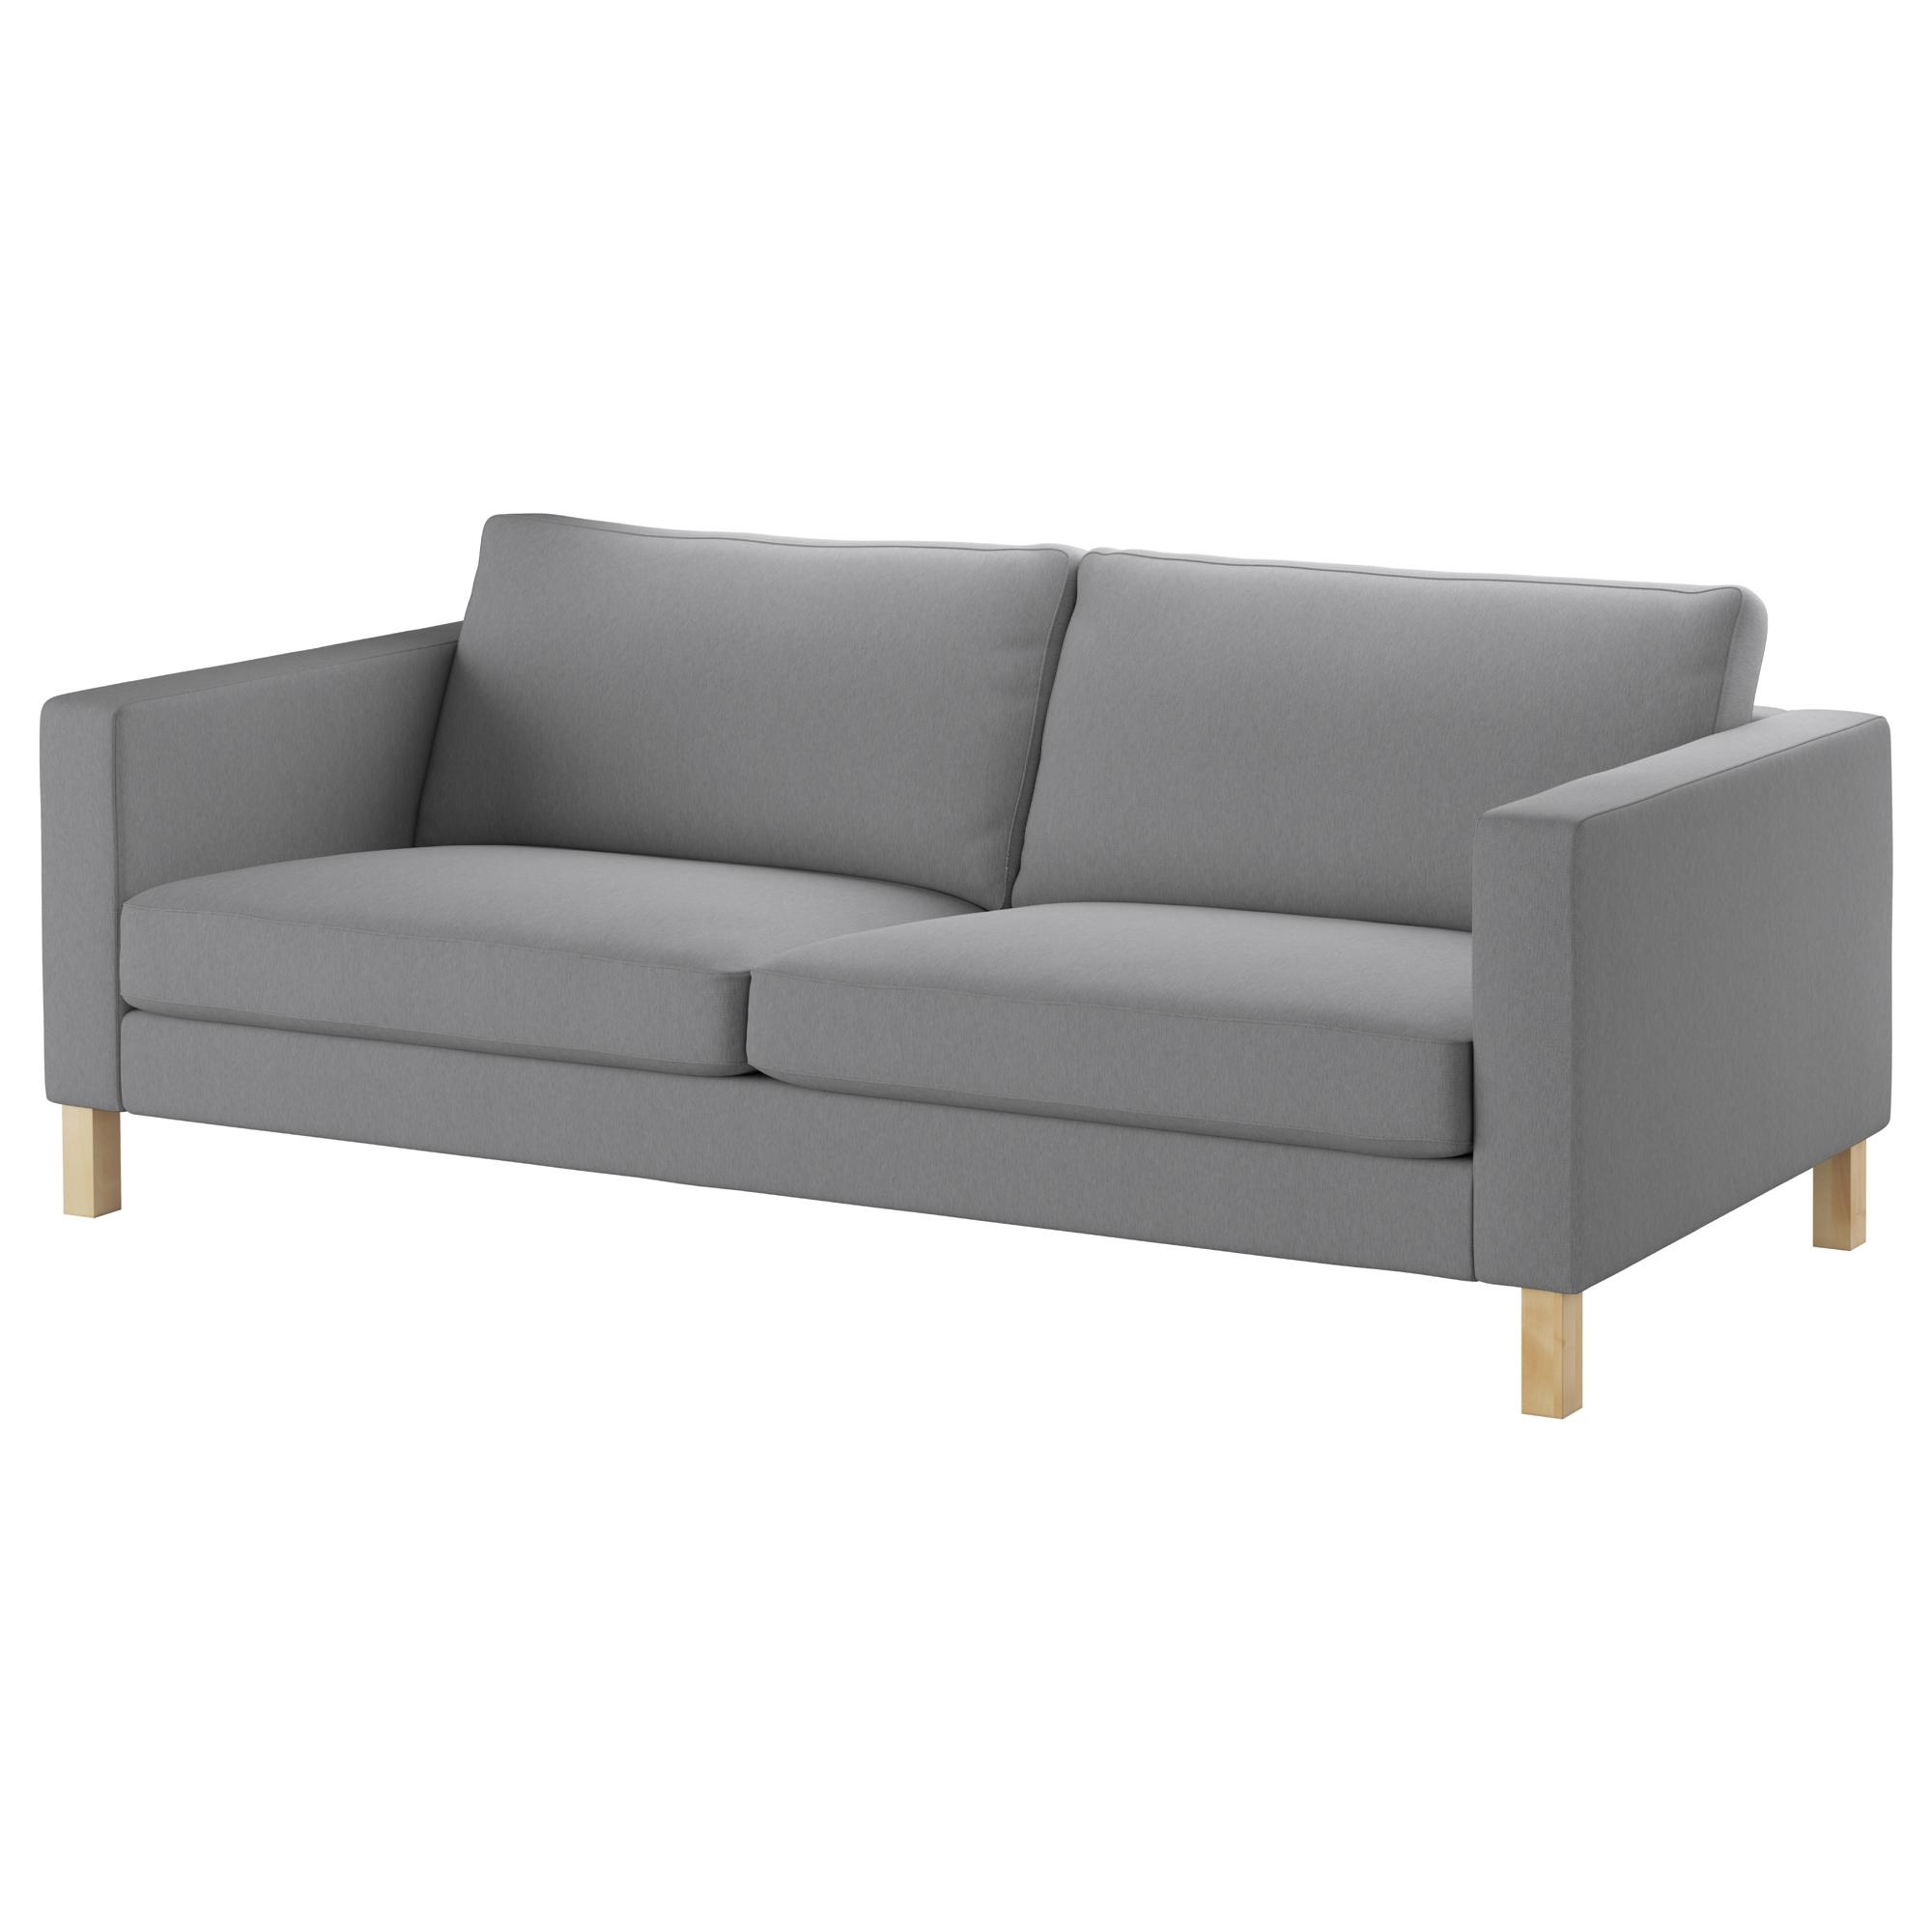 Fabric Sofas – Modern & Contemporary – Ikea Regarding Narrow Depth Sofas (Image 6 of 20)